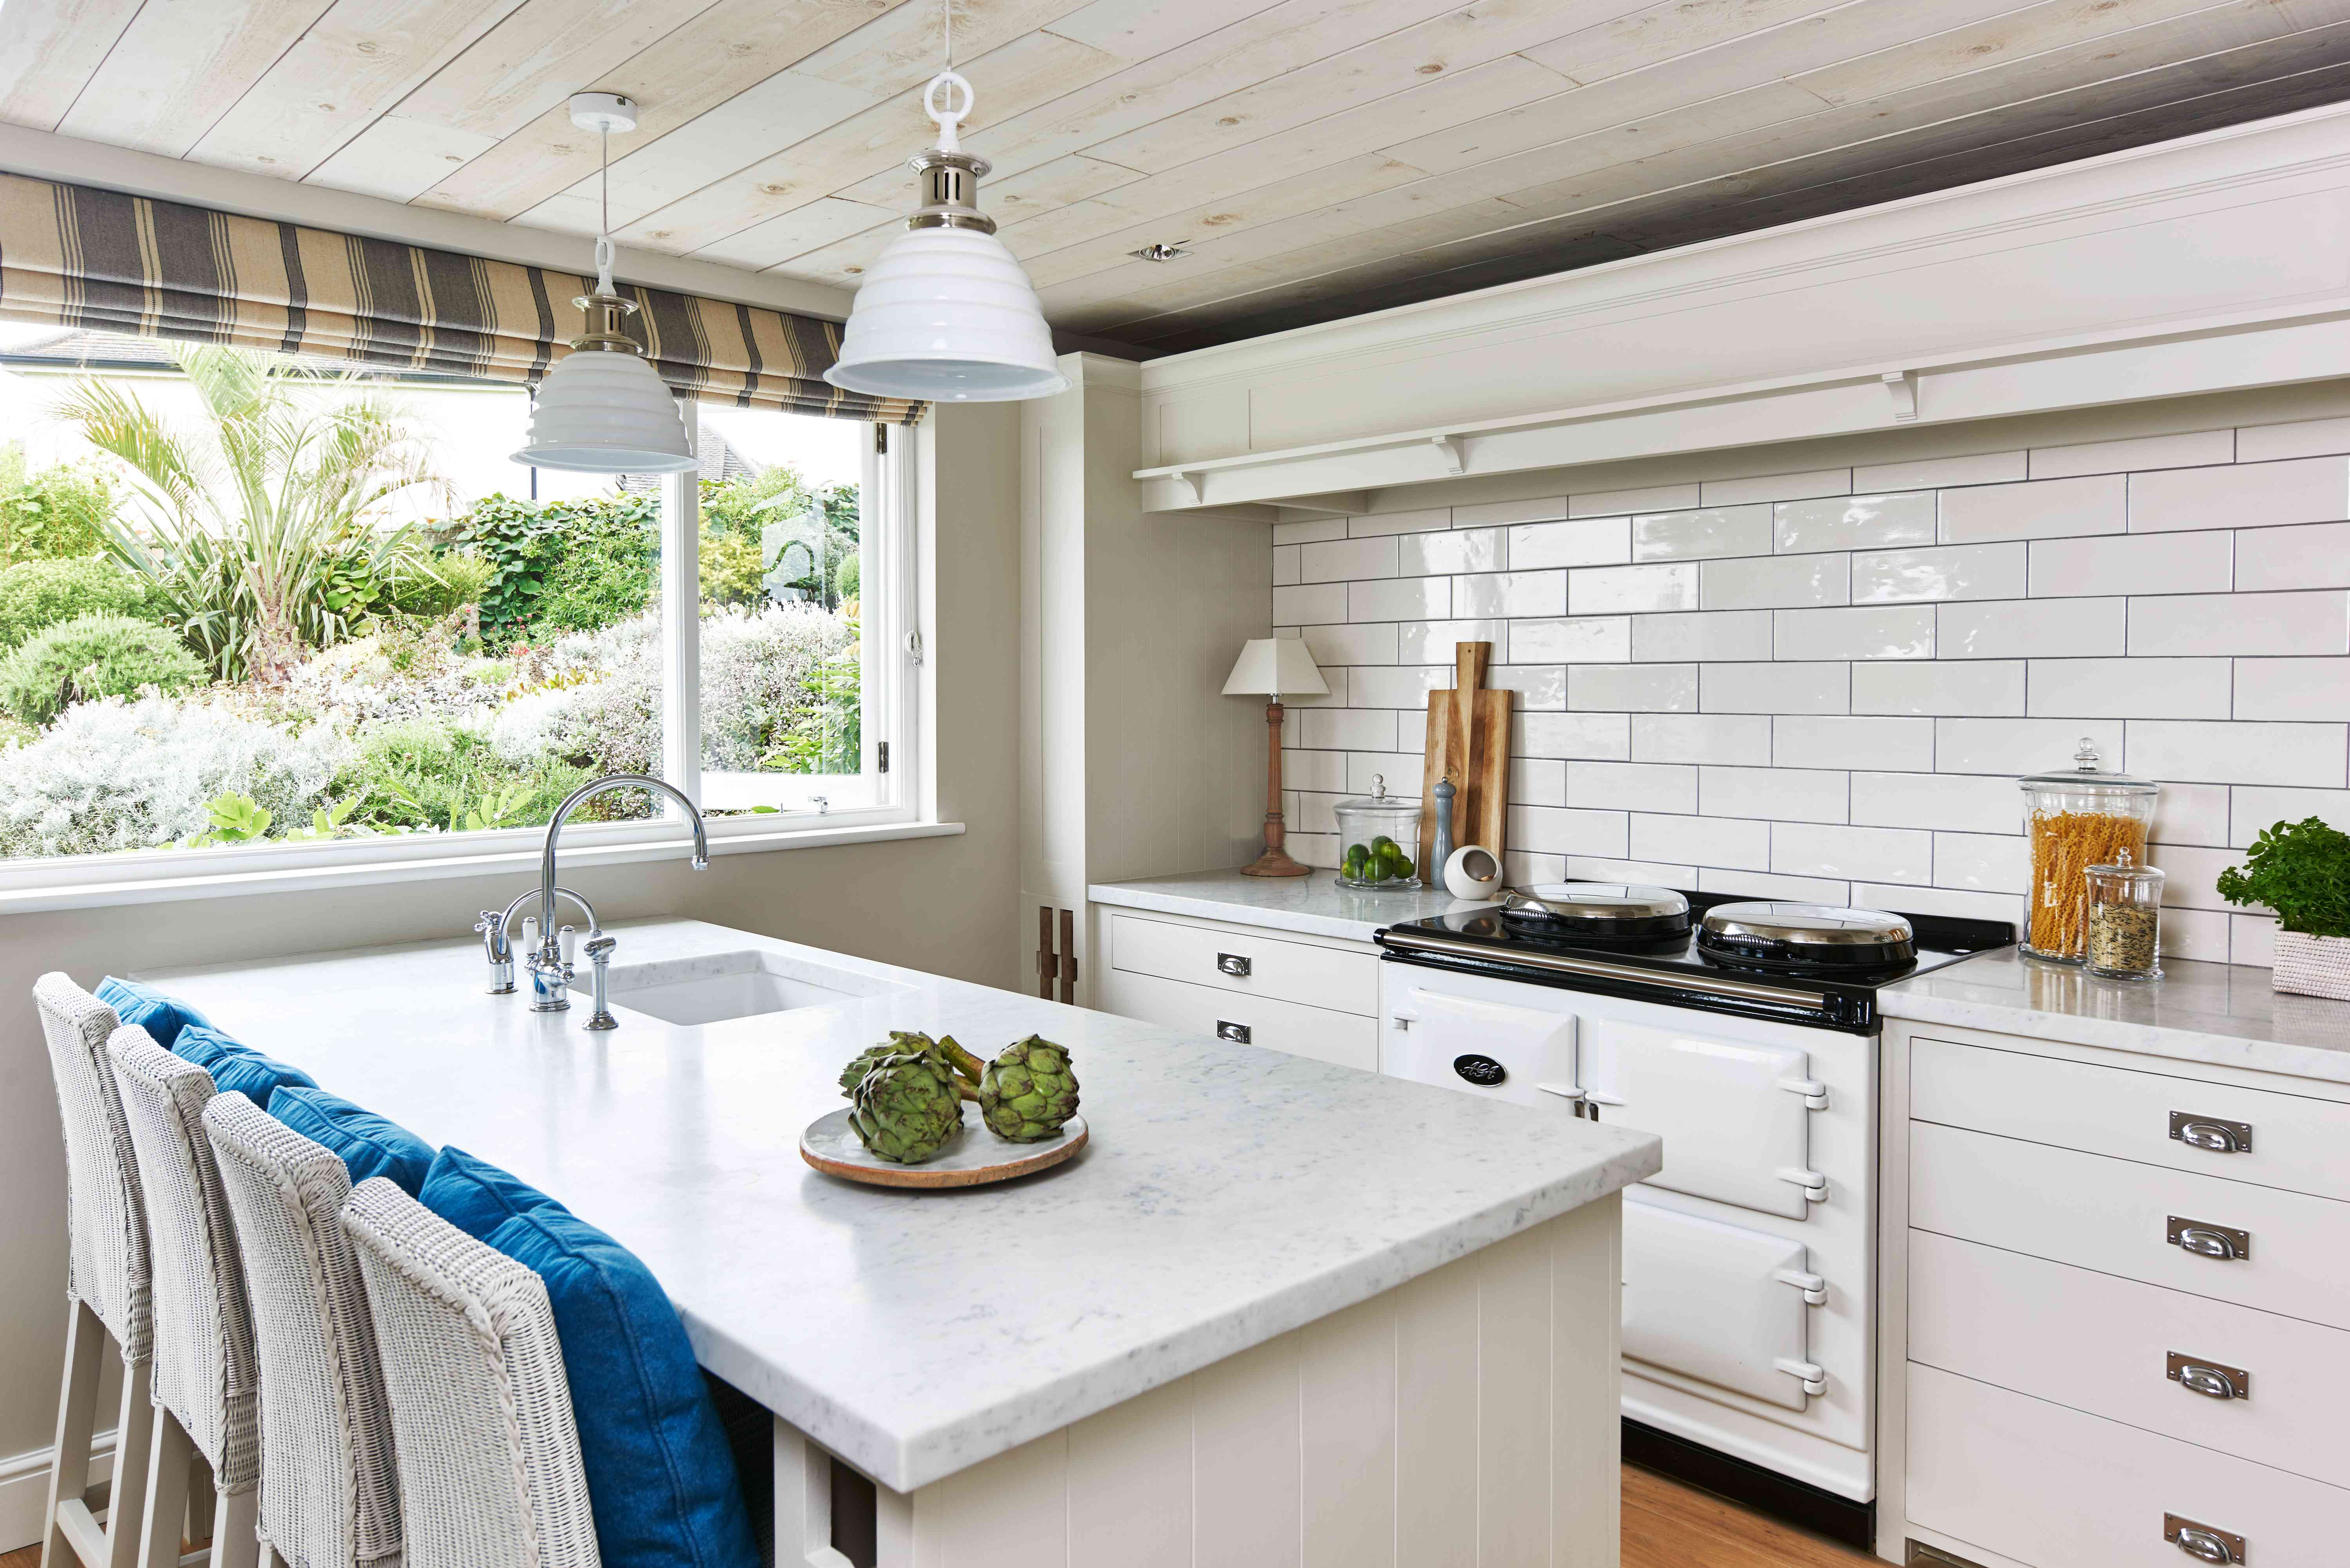 The kitchen in the country of Emma Sims-Hilditch's seaside vacation home in Cornwall